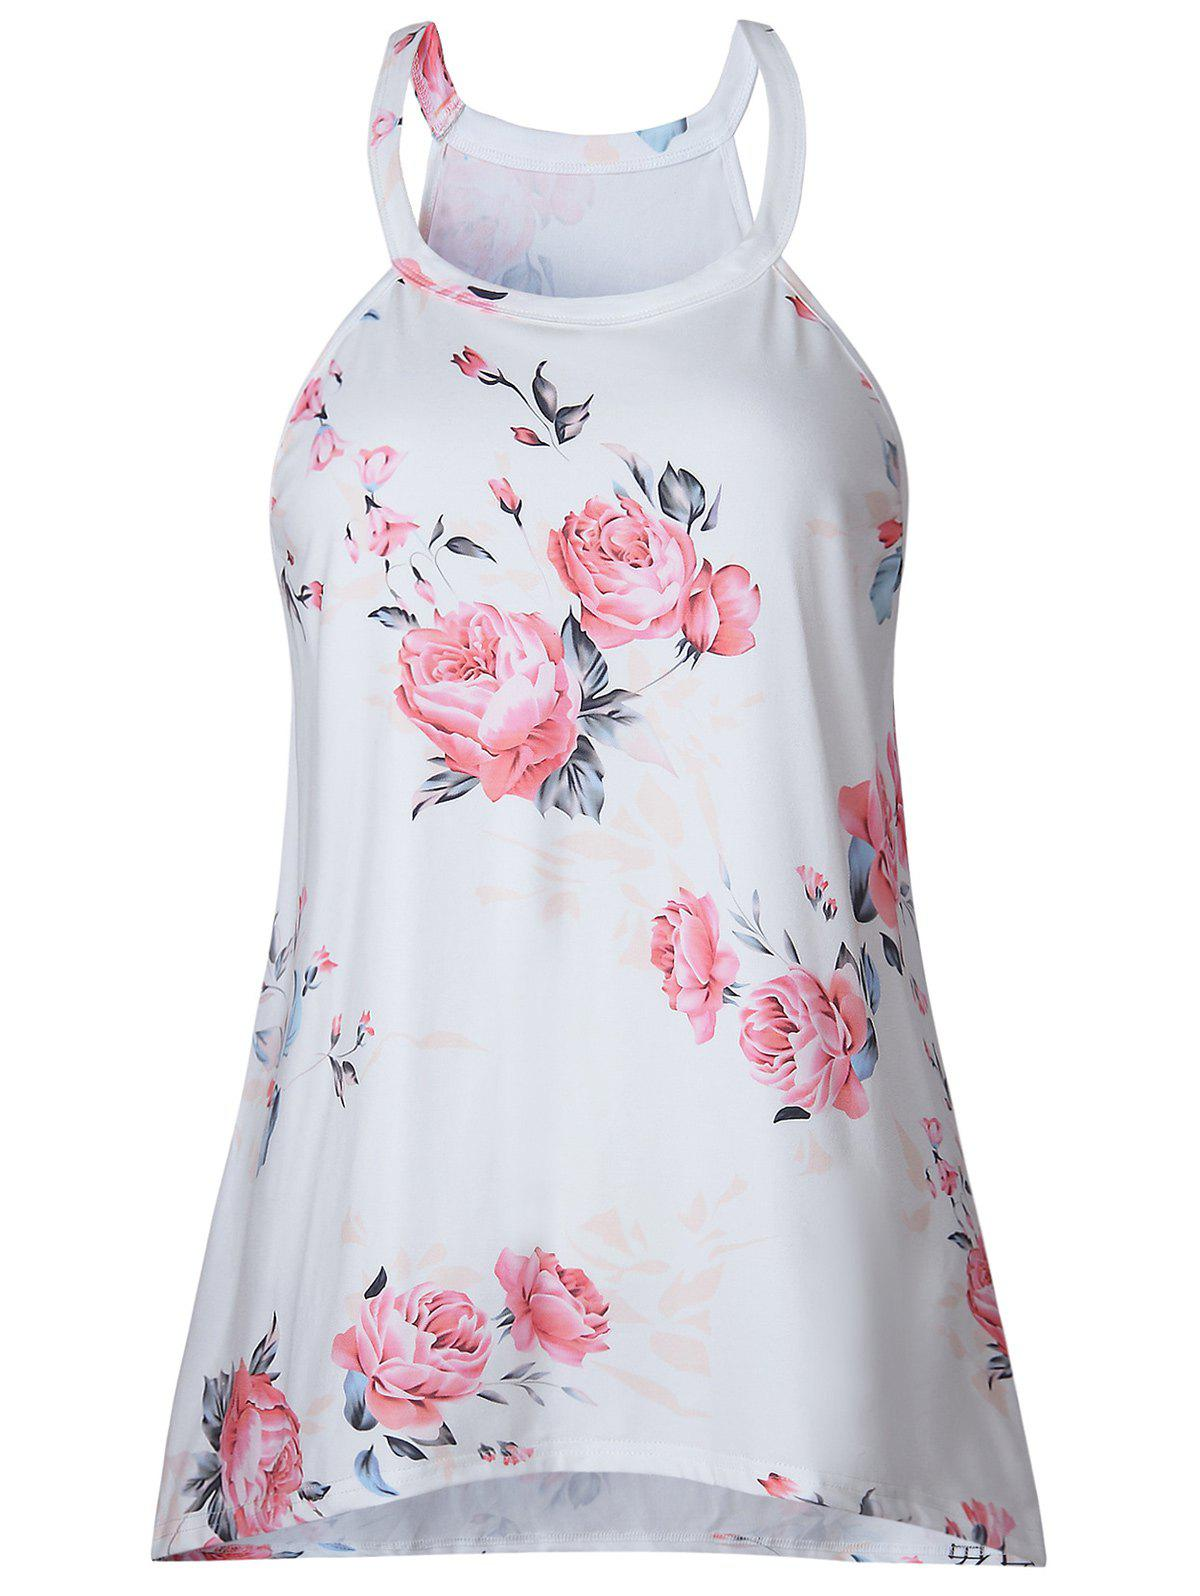 Chic Sleeveless Floral Print T-shirt